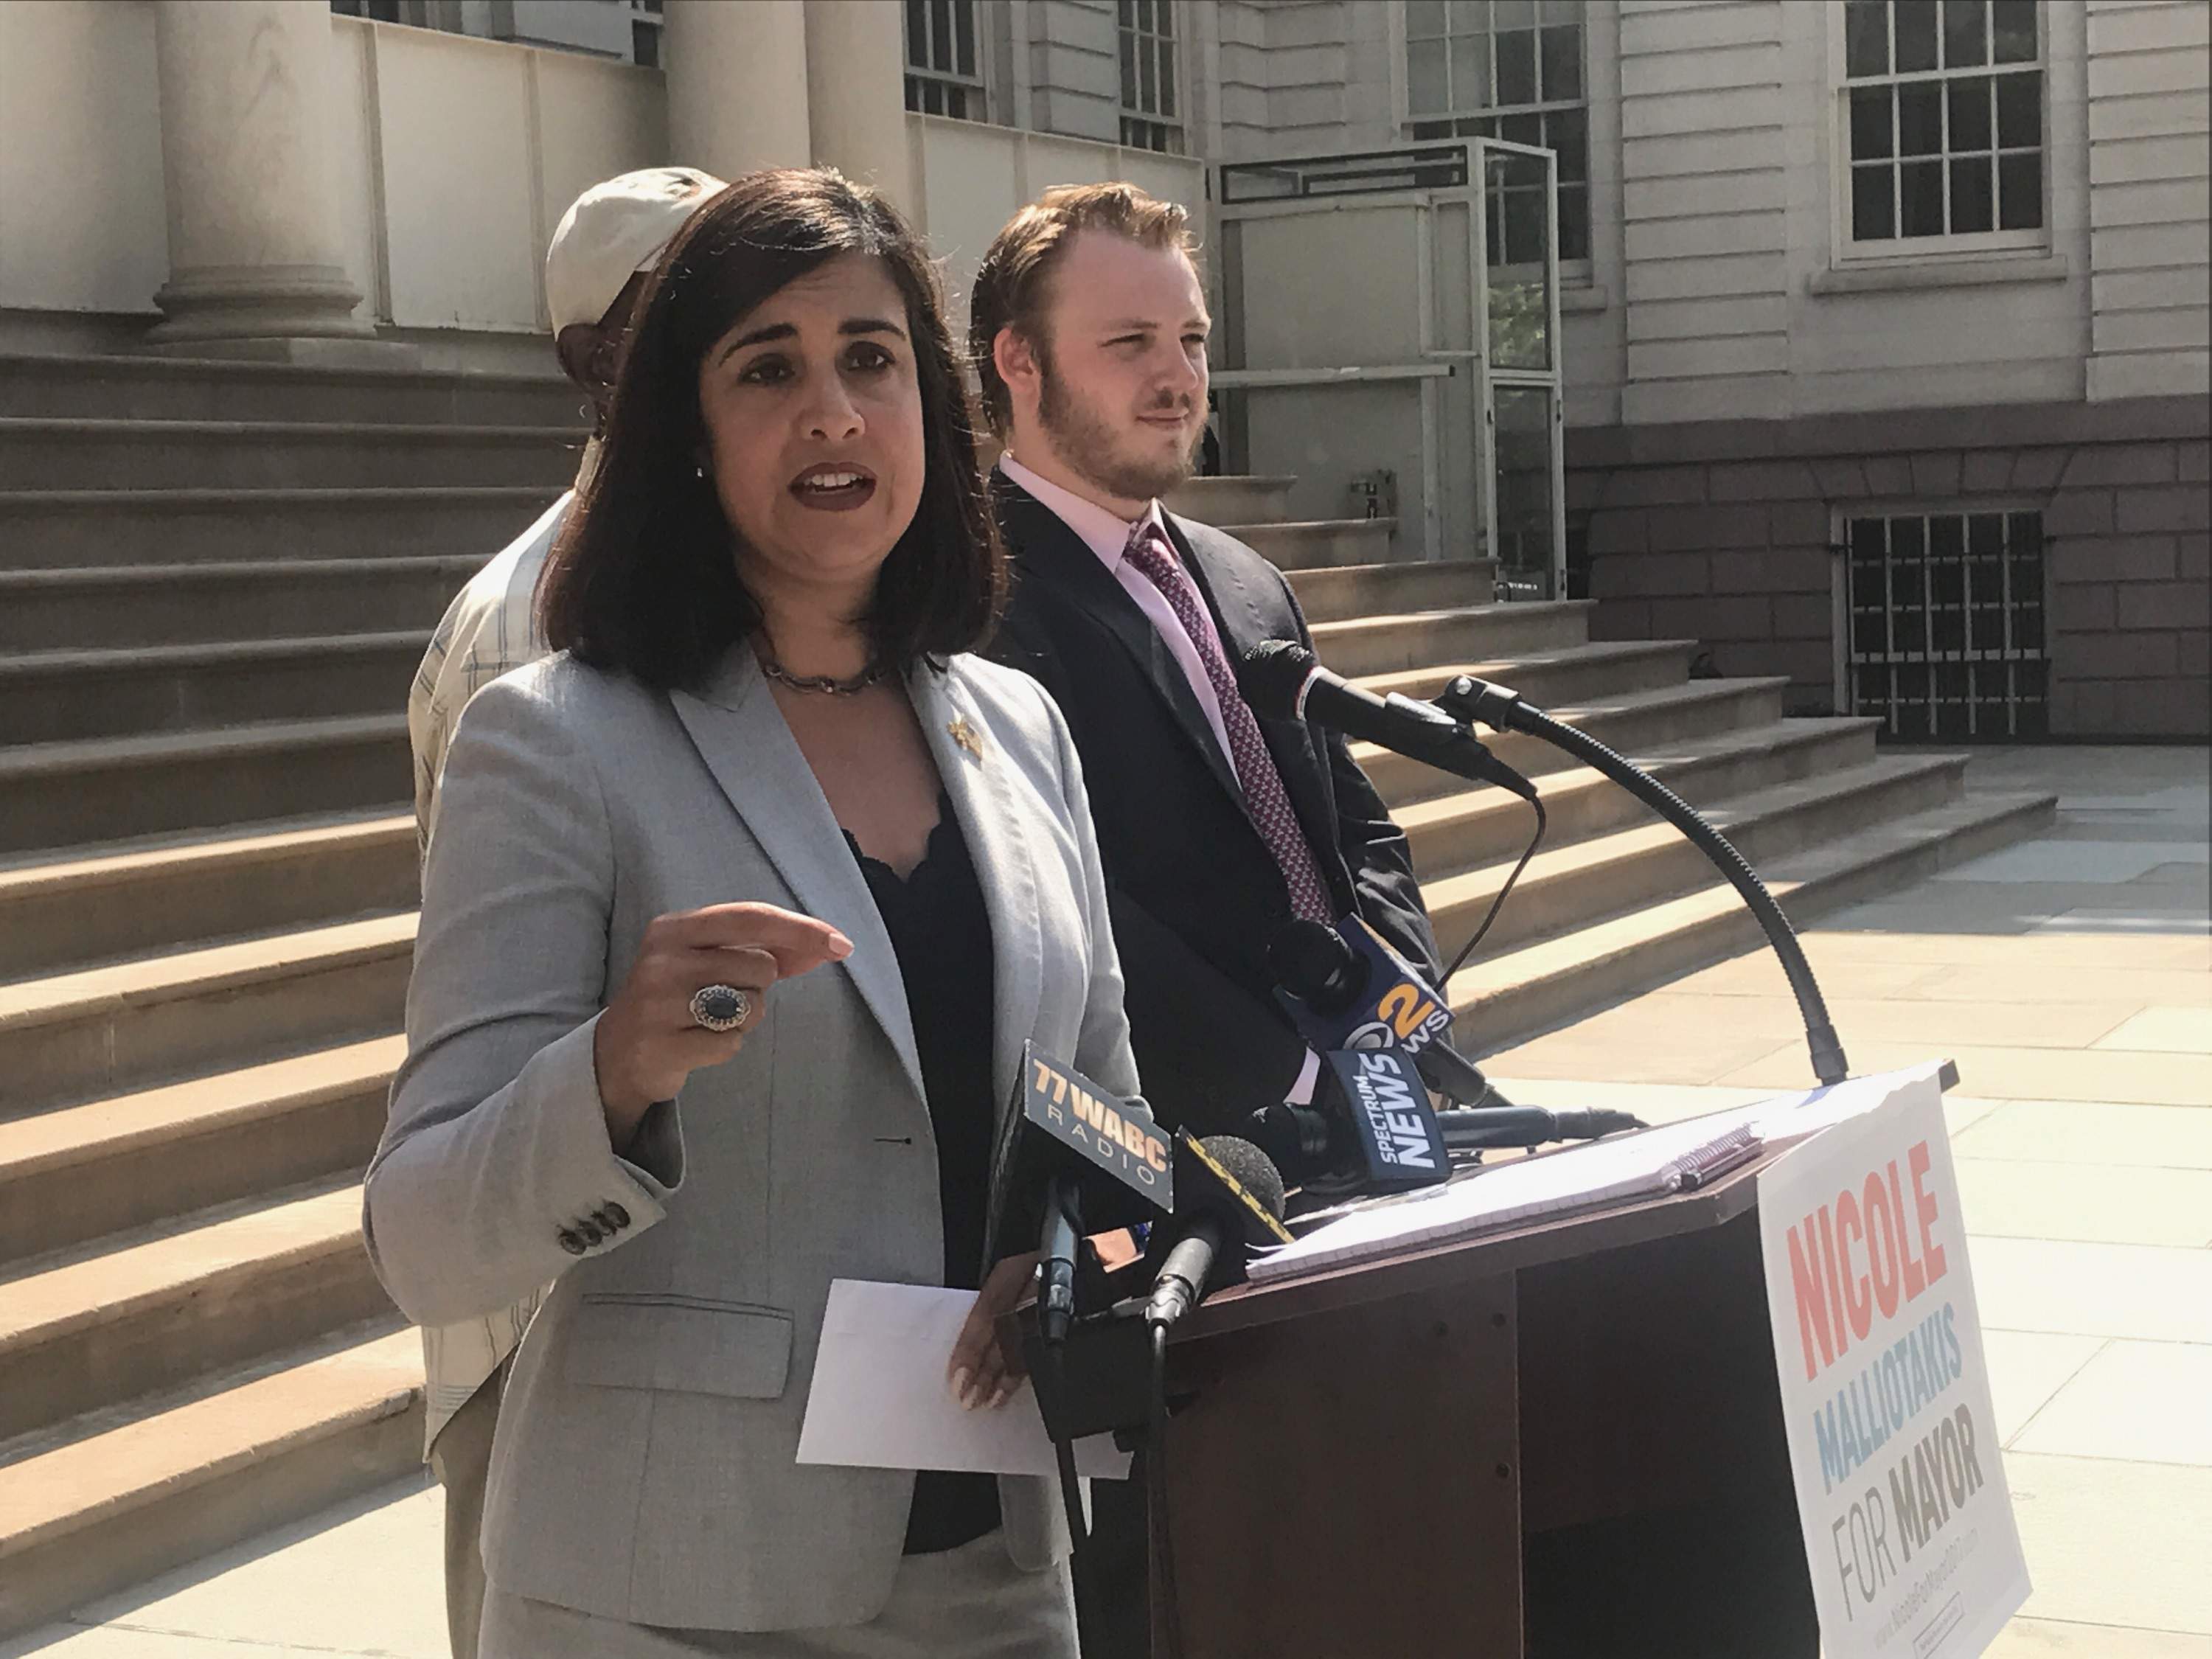 Malliotakis Files Records Request for Mayor's Travel Expenses